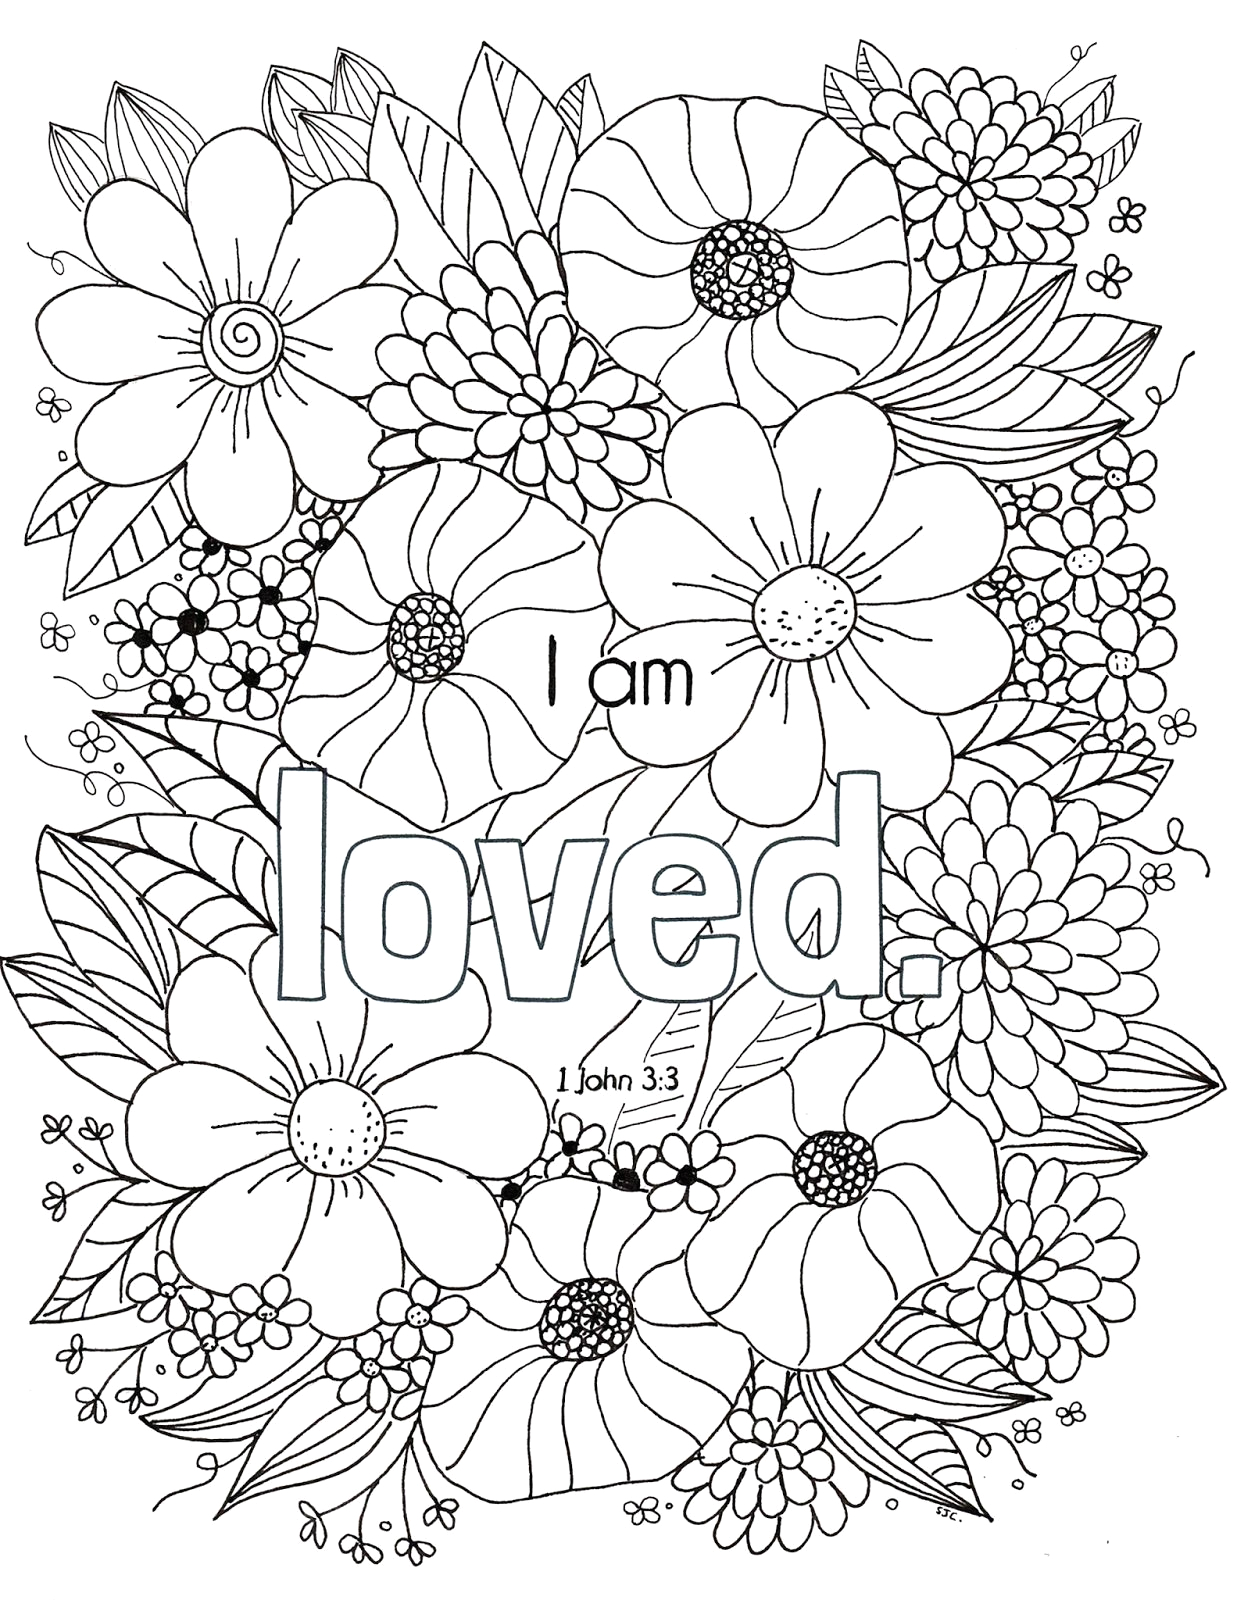 Free Bible Verse Coloring Pages for Adults Free Bible Verse Coloring Page